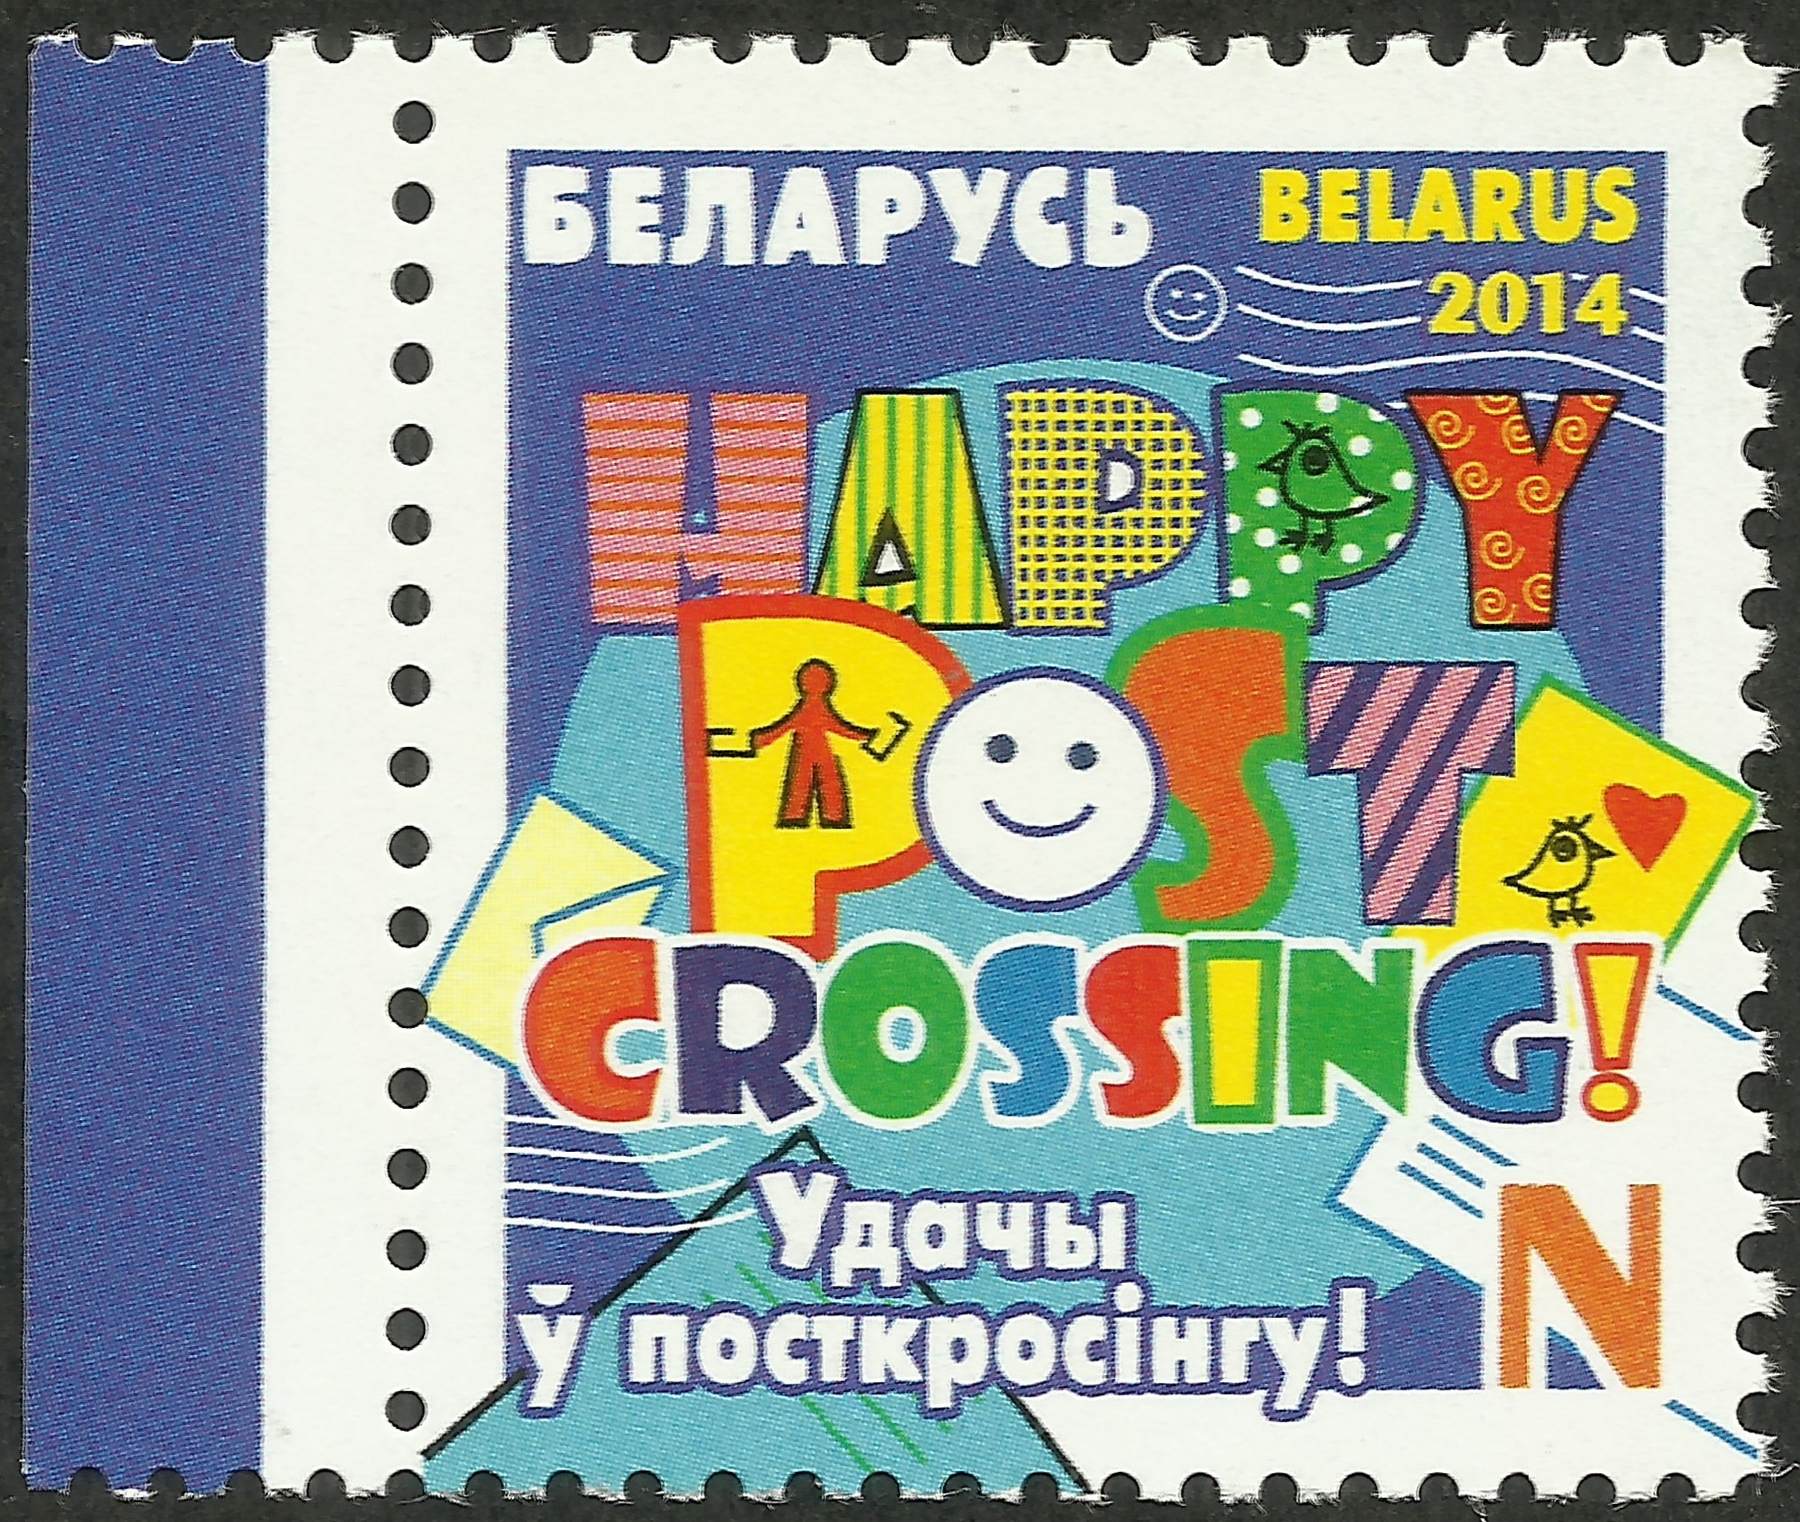 Belarus - Scott #884 (2014) - scanned from my collection